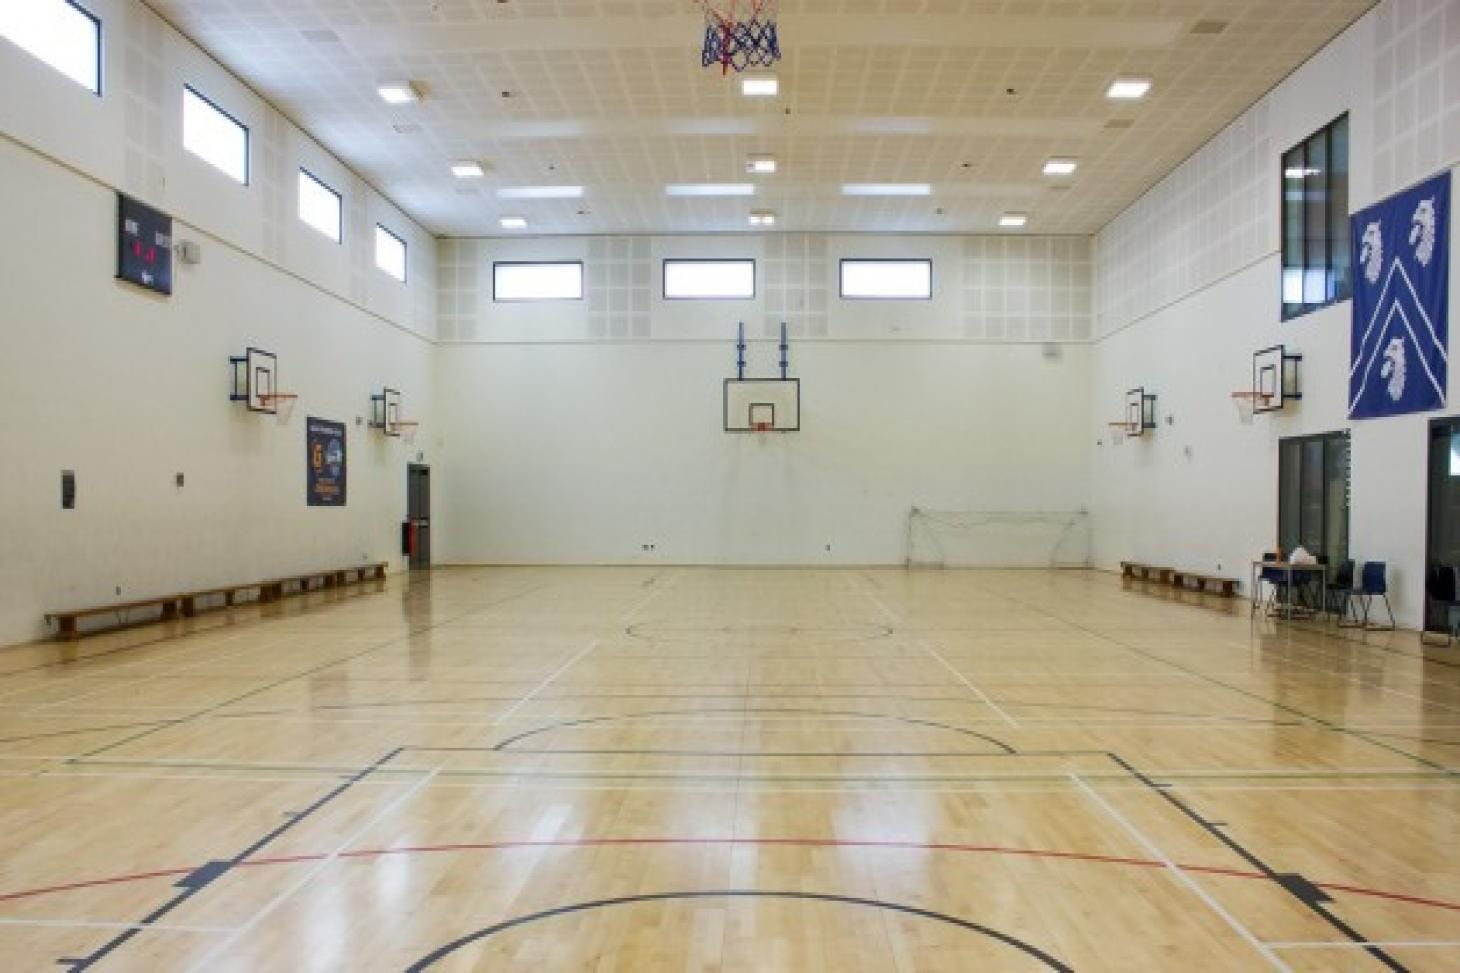 Raines Foundation School Indoor basketball court